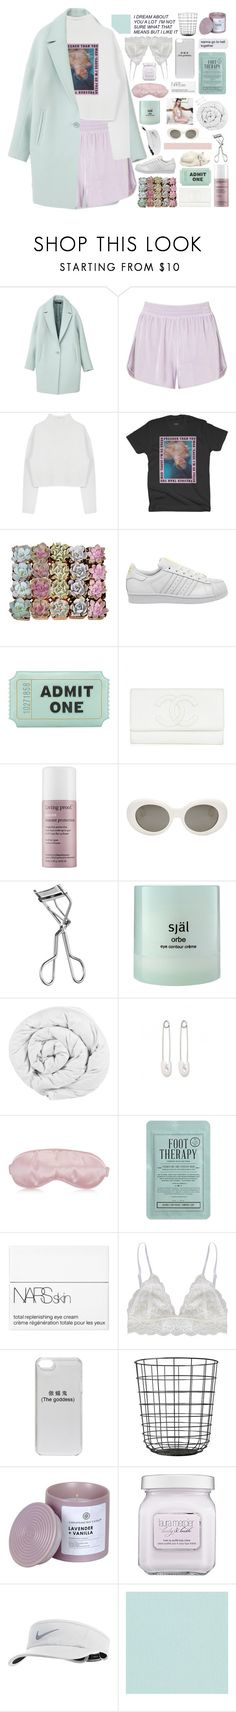 """""""TRYNA PLAY IT COY+ COLLAB WITH RACHEL"""" by breniixii ❤ liked on Polyvore featuring Miss Selfridge, Dion Lee, adidas, Kate Spade, Living Proof, Acne Studios, Lancôme, själ, The Fine Bedding Company and Kristin Cavallari"""